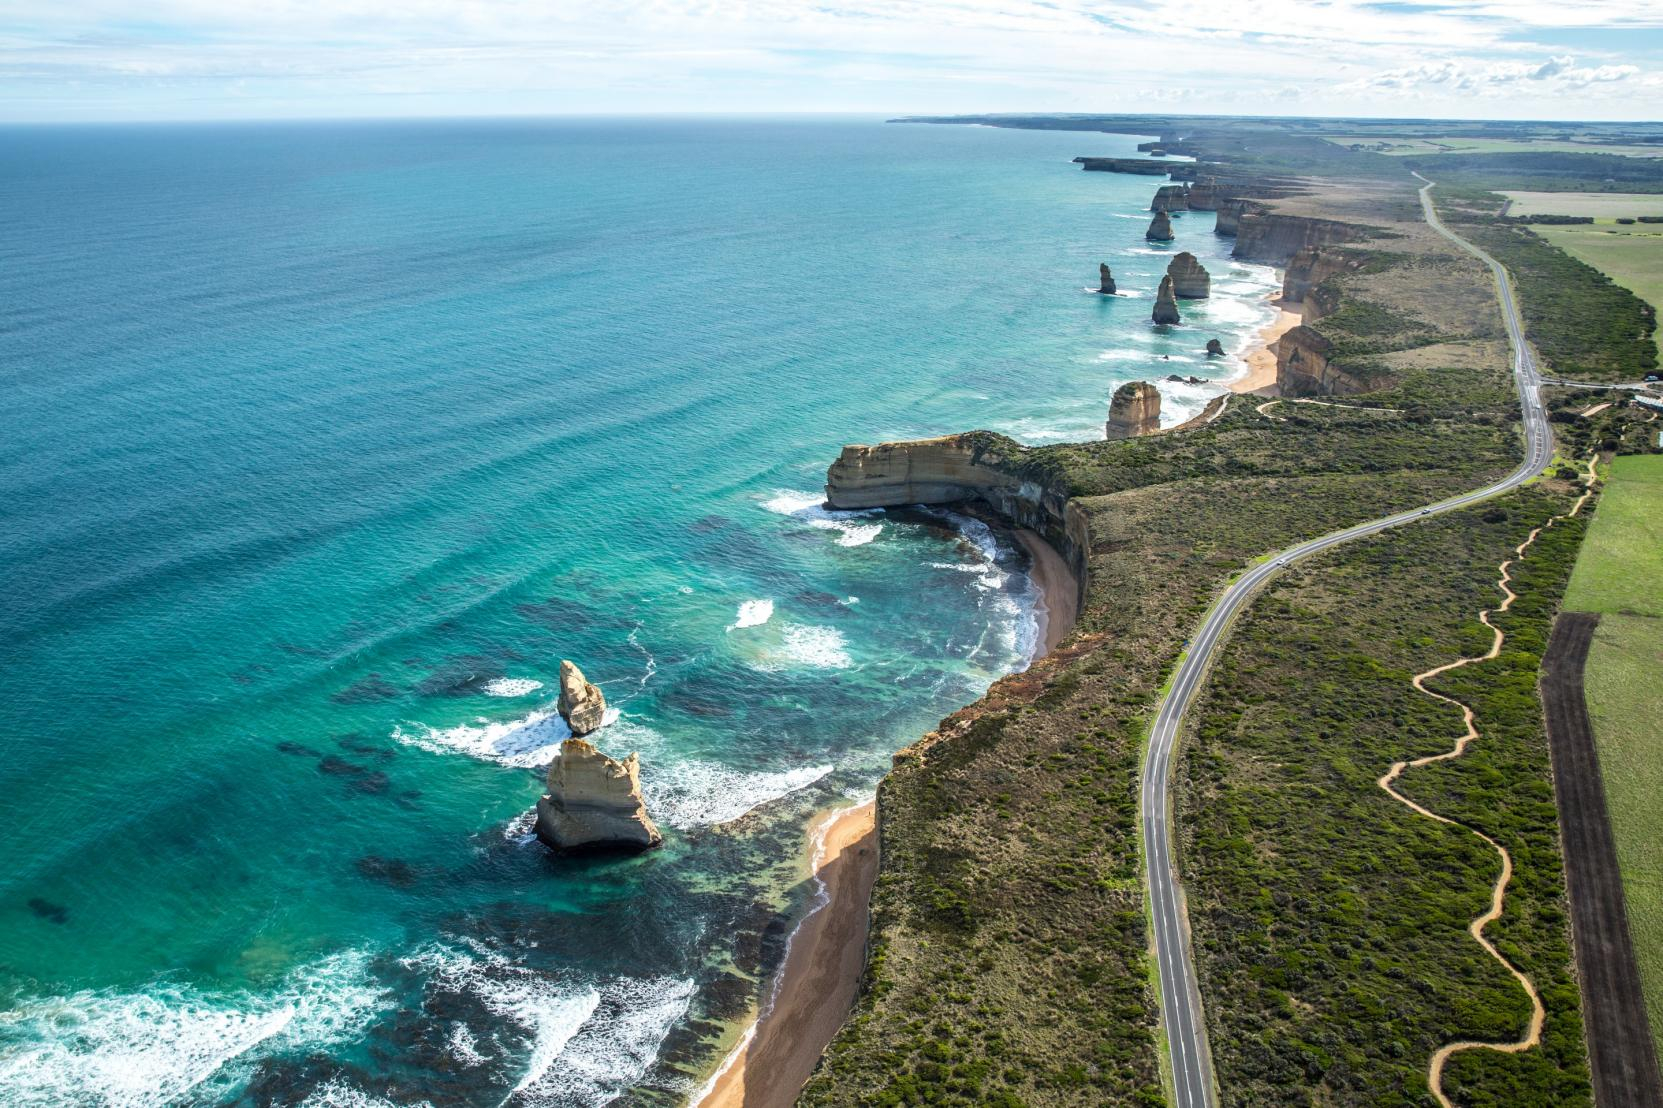 Melbourne & The Great Ocean Road | The Great Ocean Road, Victoria